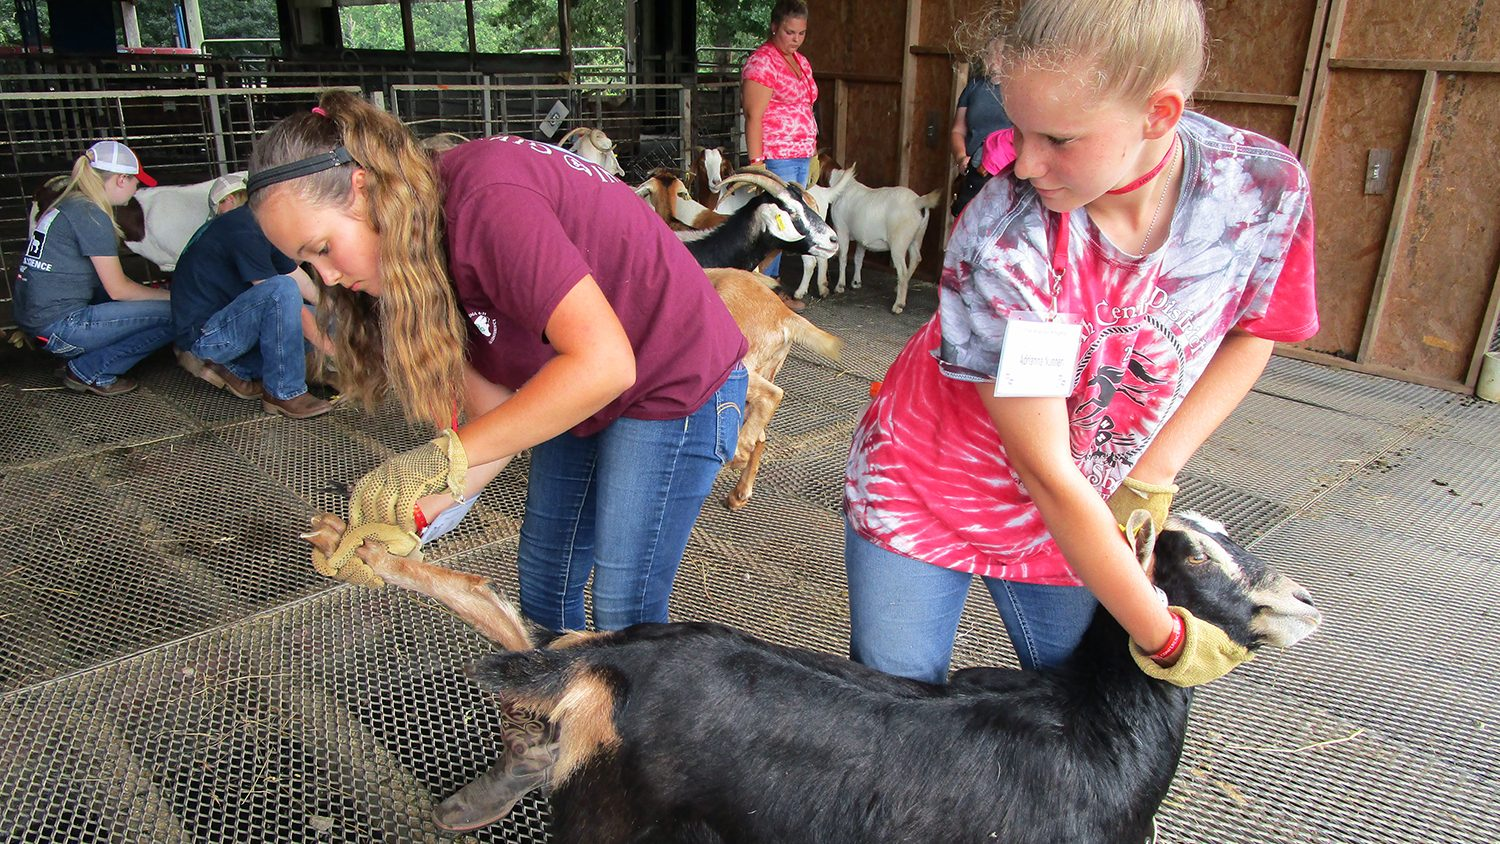 Kids work with goats